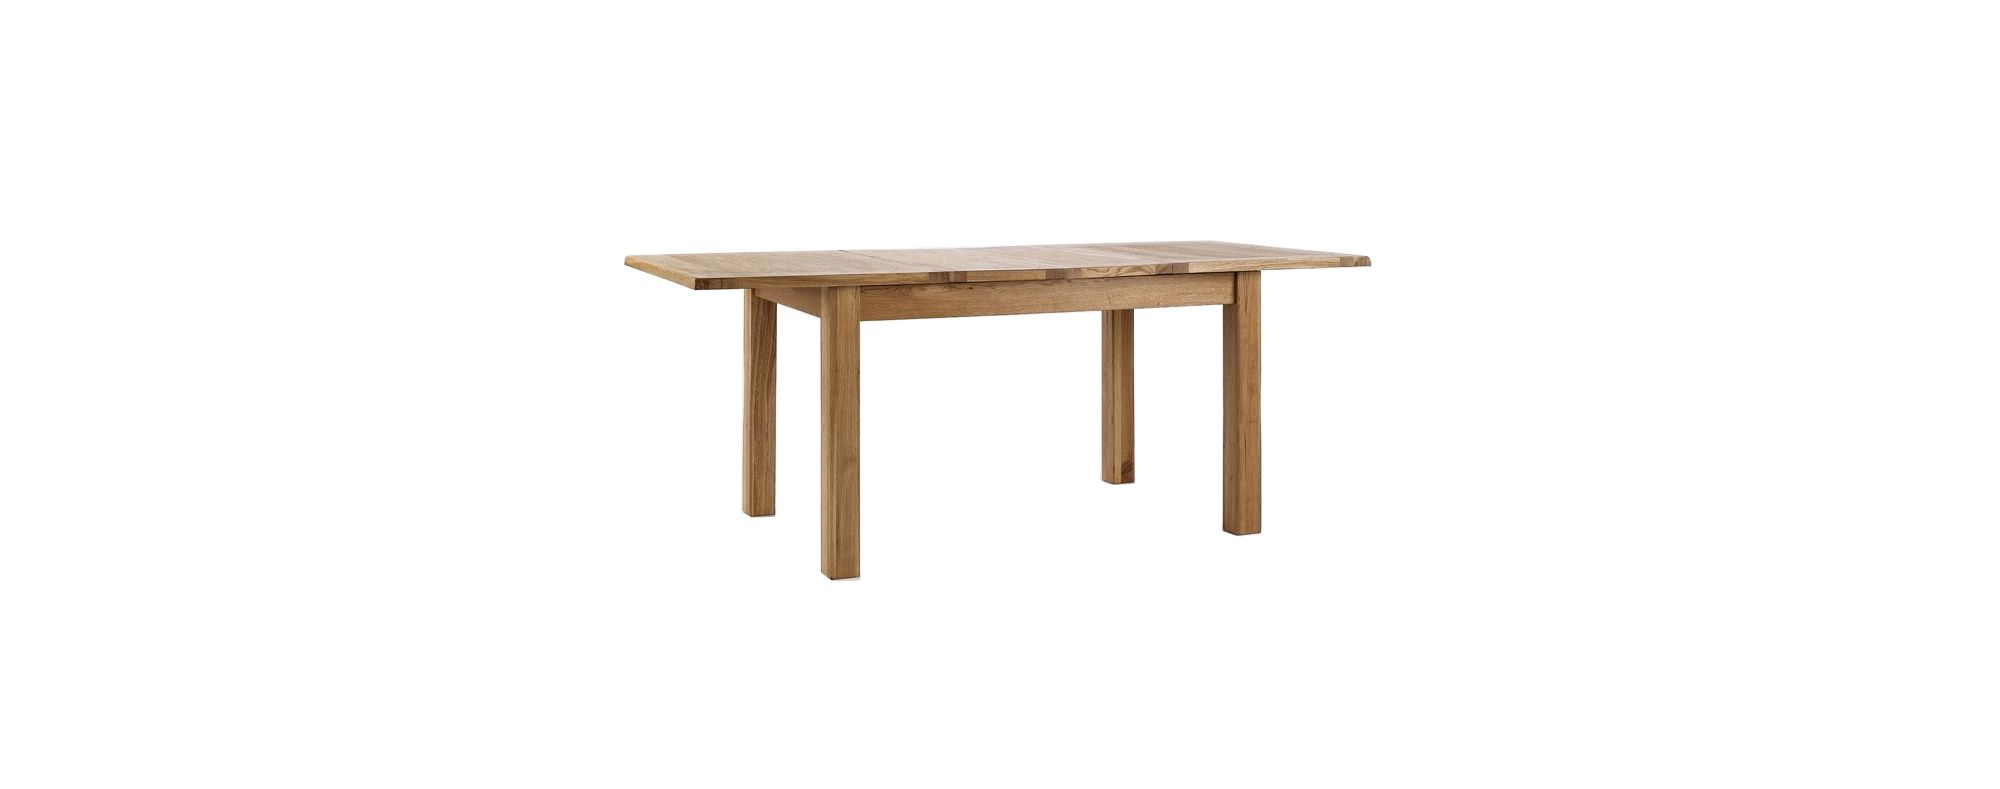 Home and garden gt Furniture Westbury Reclaimed Oak 3  : 261 6075PI1000190MNwid2000amphei2000 from misterx-price.com size 2000 x 2000 jpeg 40kB